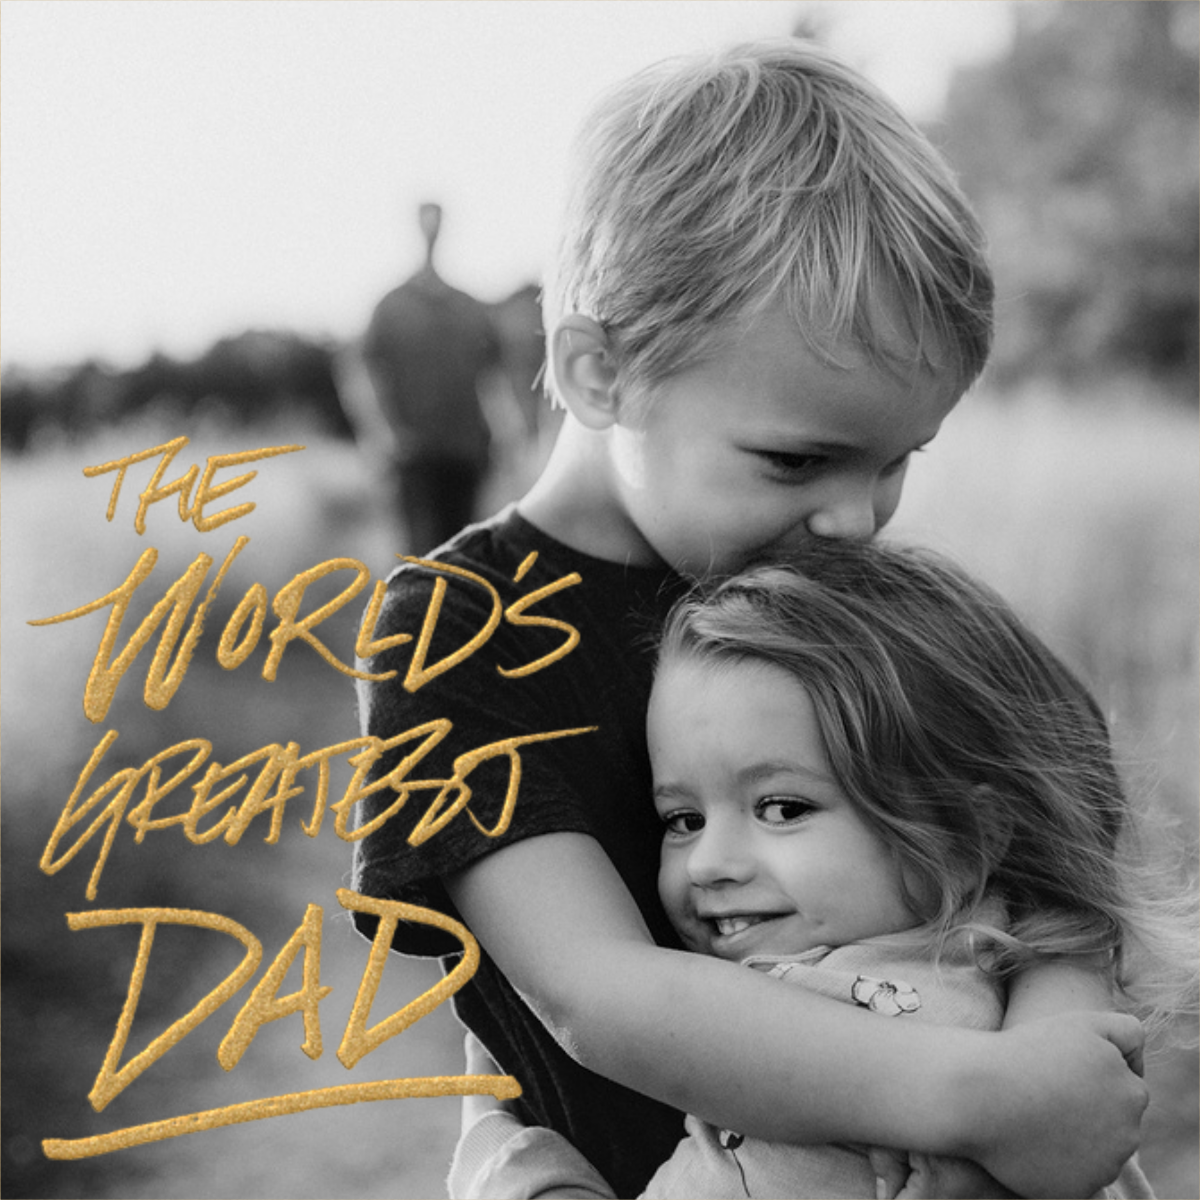 World's Greatest Dad (Photo) - Paperless Post - Father's Day